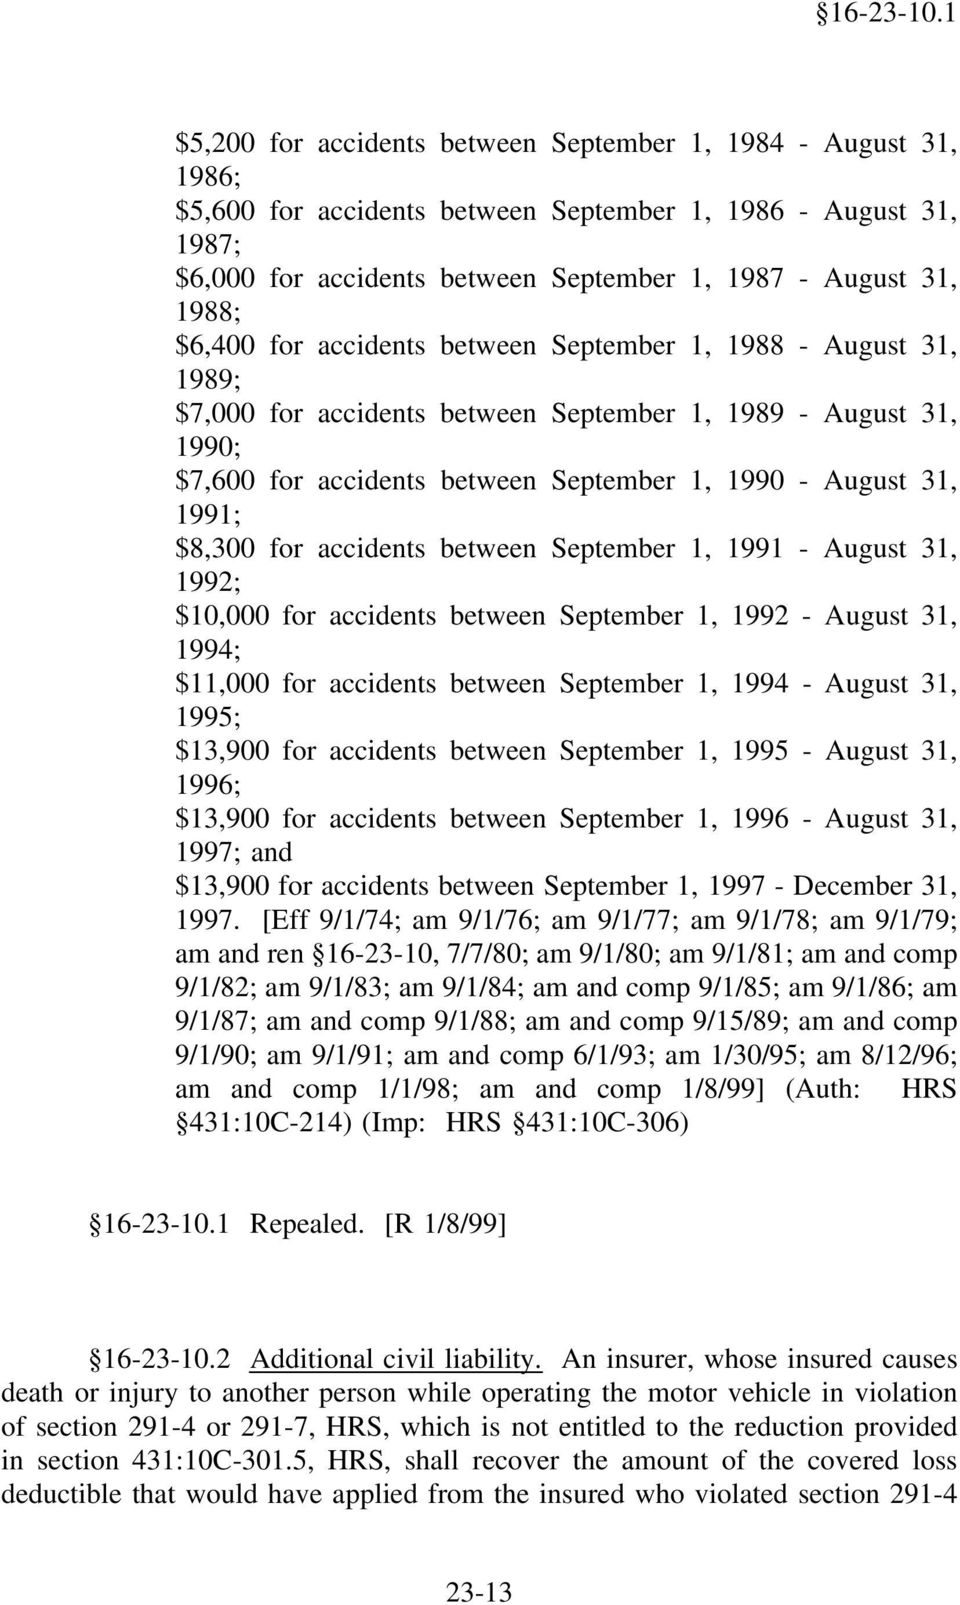 $6,400 for accidents between September 1, 1988 - August 31, 1989; $7,000 for accidents between September 1, 1989 - August 31, 1990; $7,600 for accidents between September 1, 1990 - August 31, 1991;